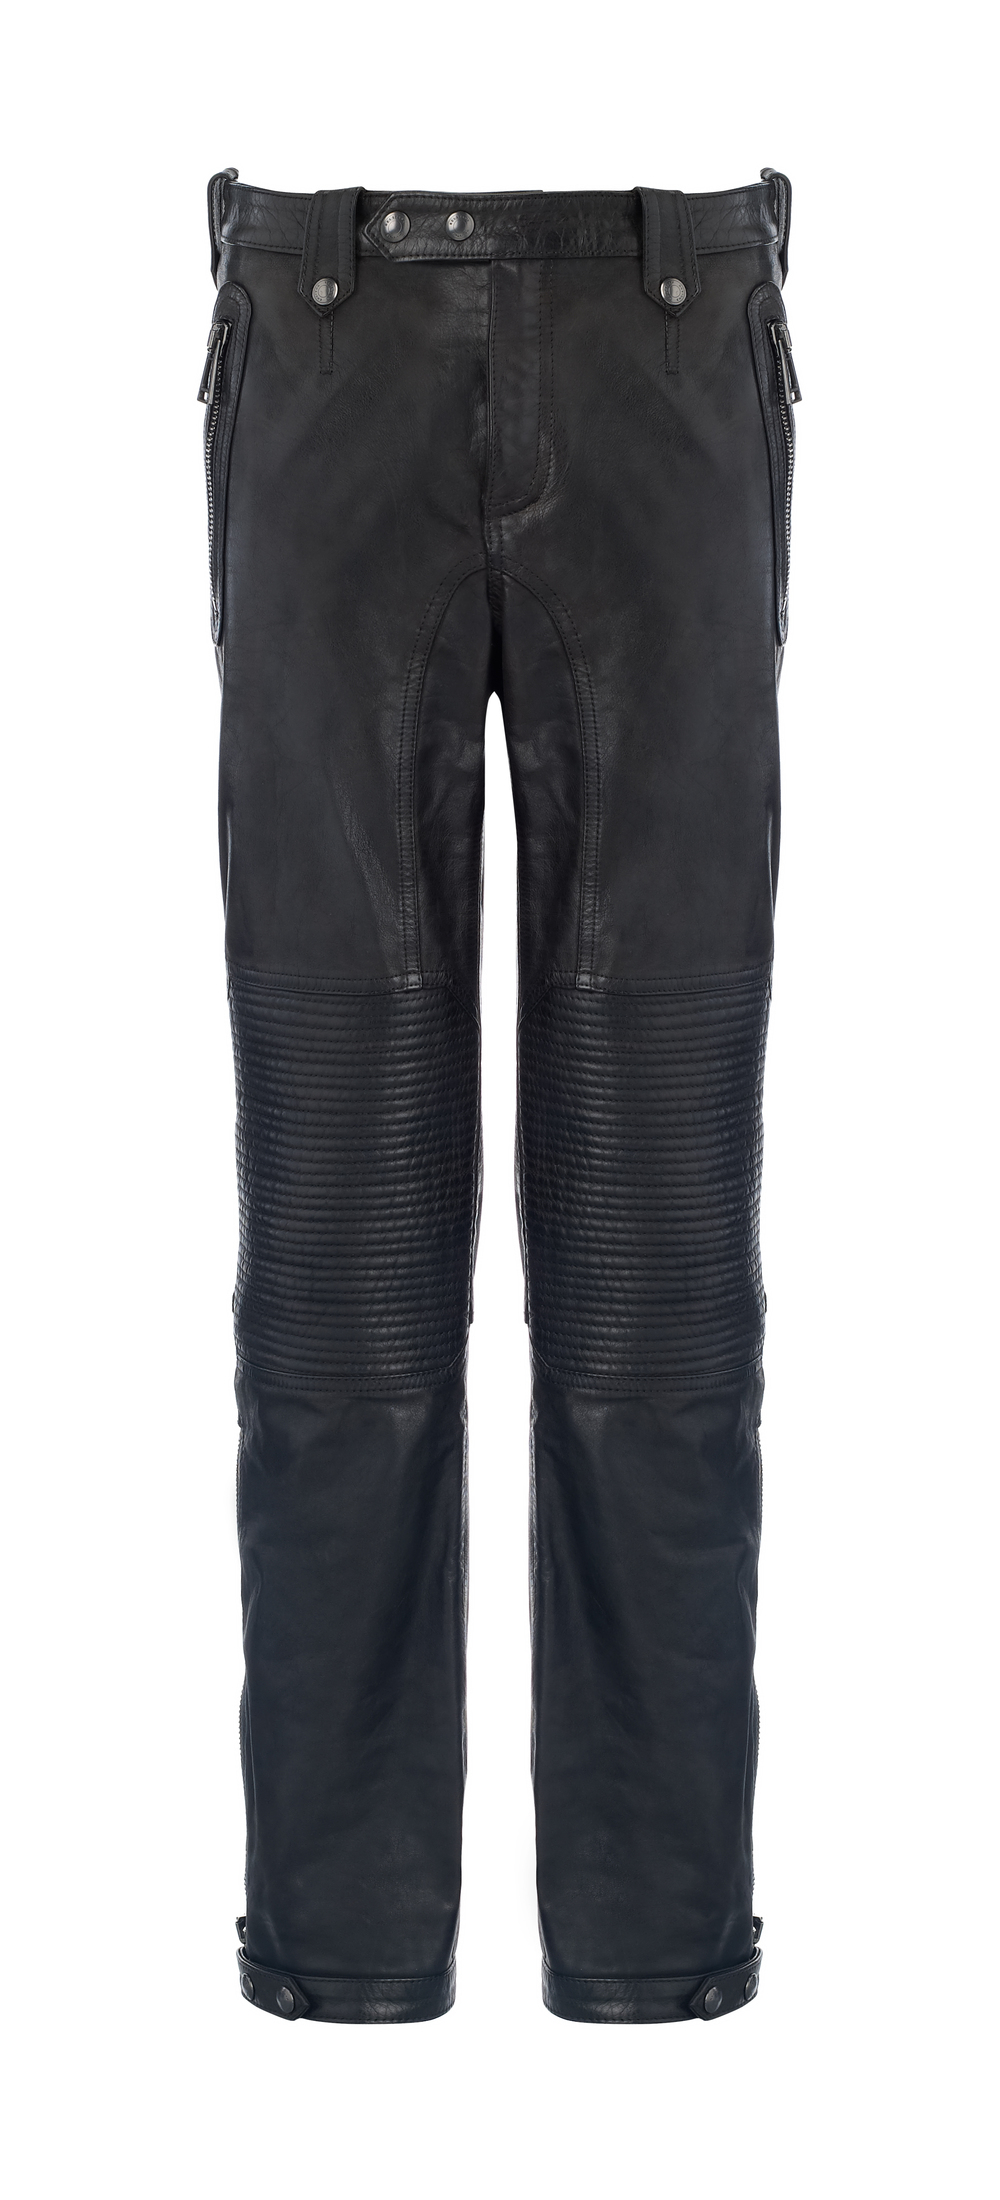 Beckham for Belstaff_Telford Pant Man_Black_1.jpg